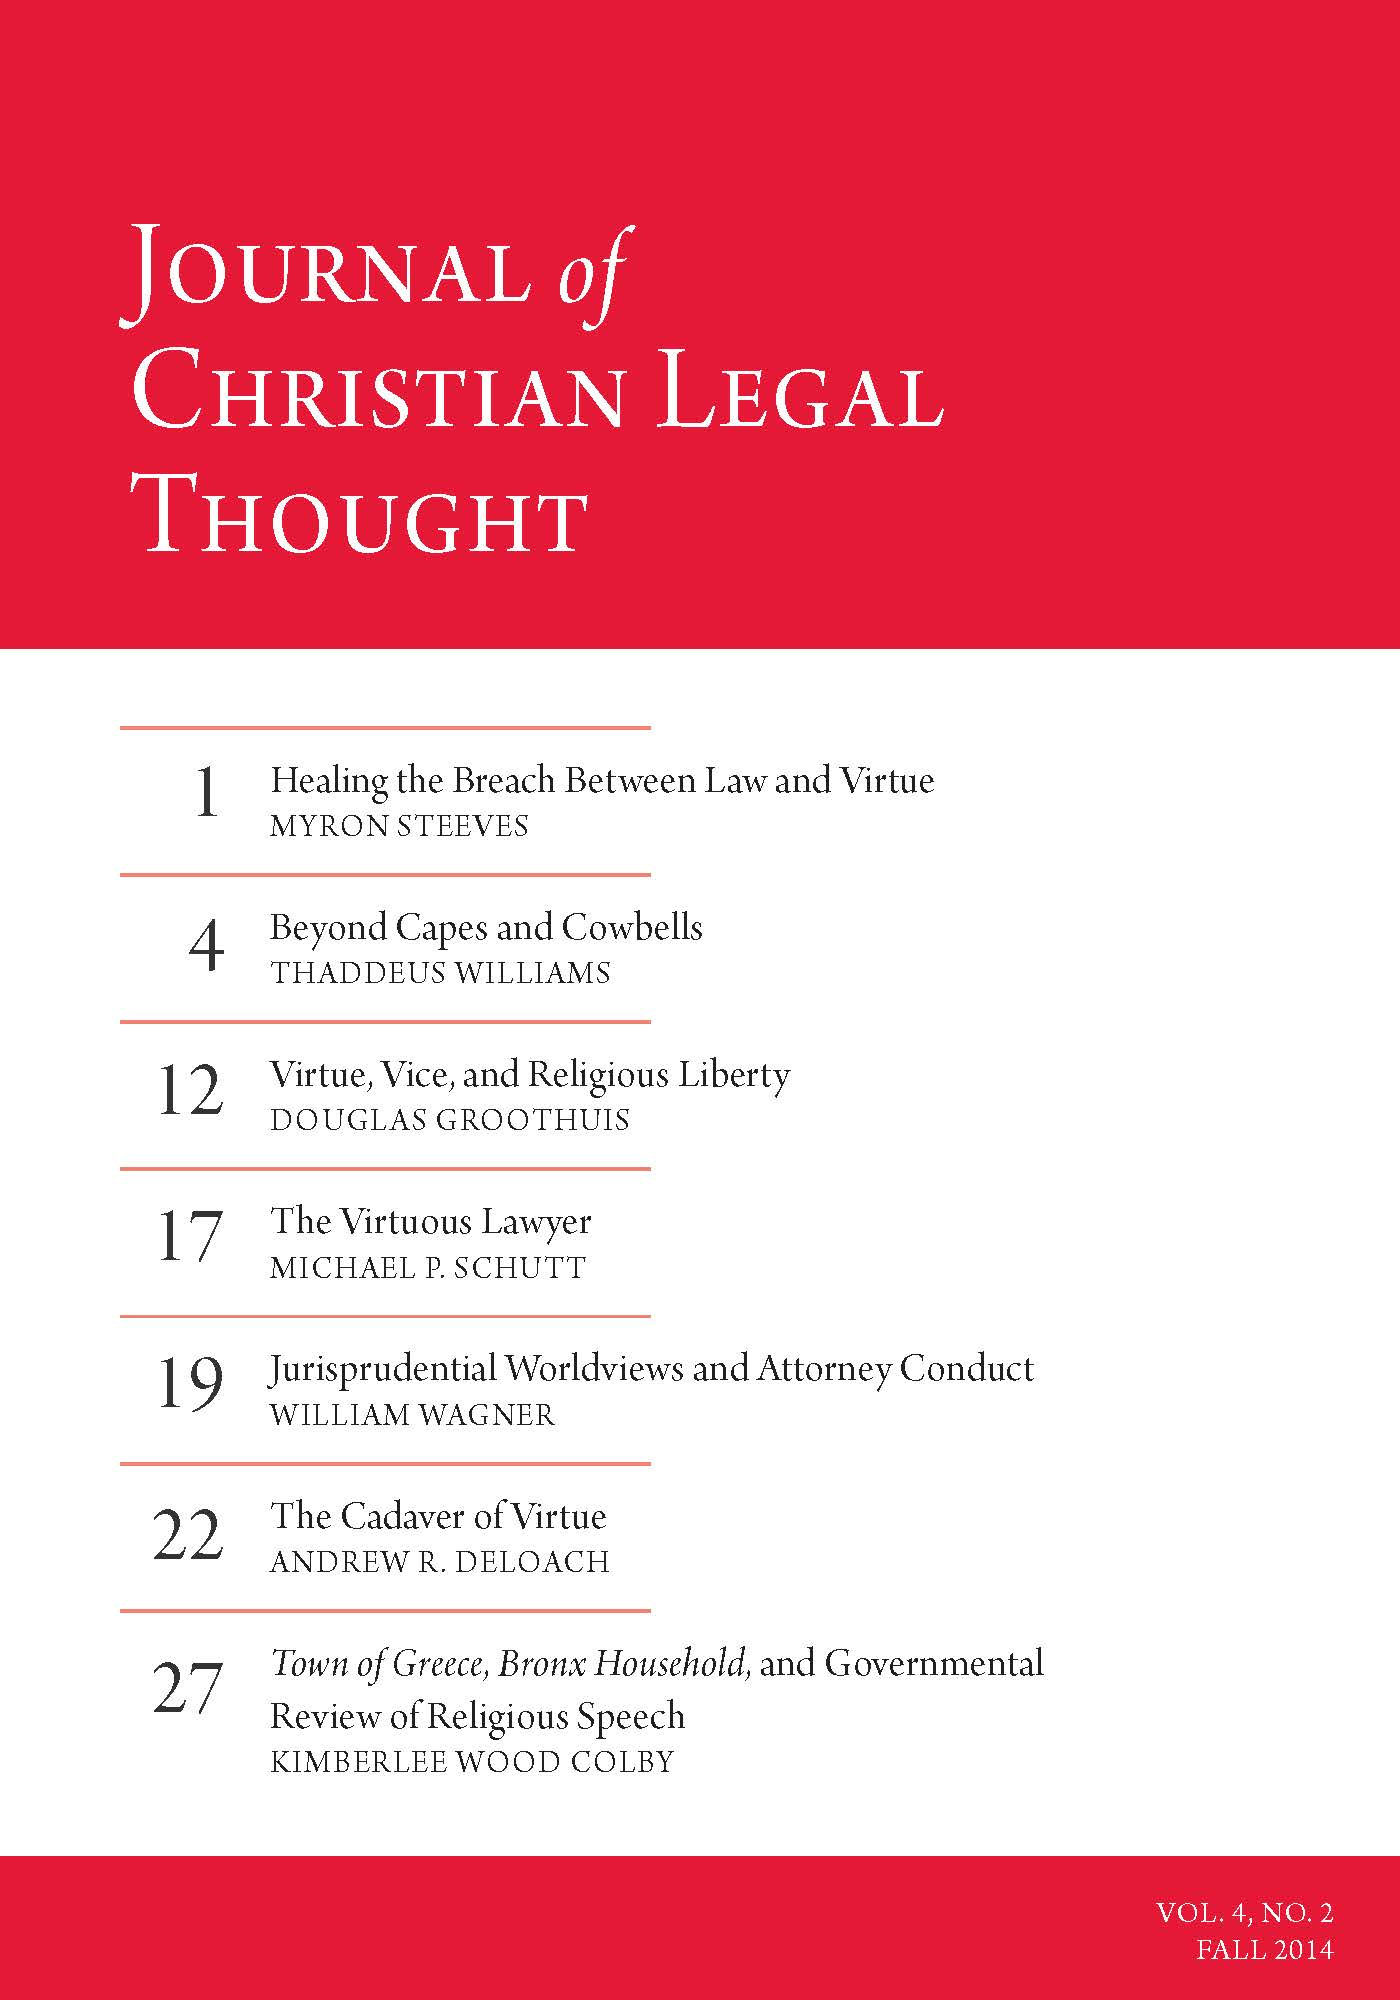 Christian Legal Society: Journal Of Christian Legal Thought - Fall 2014